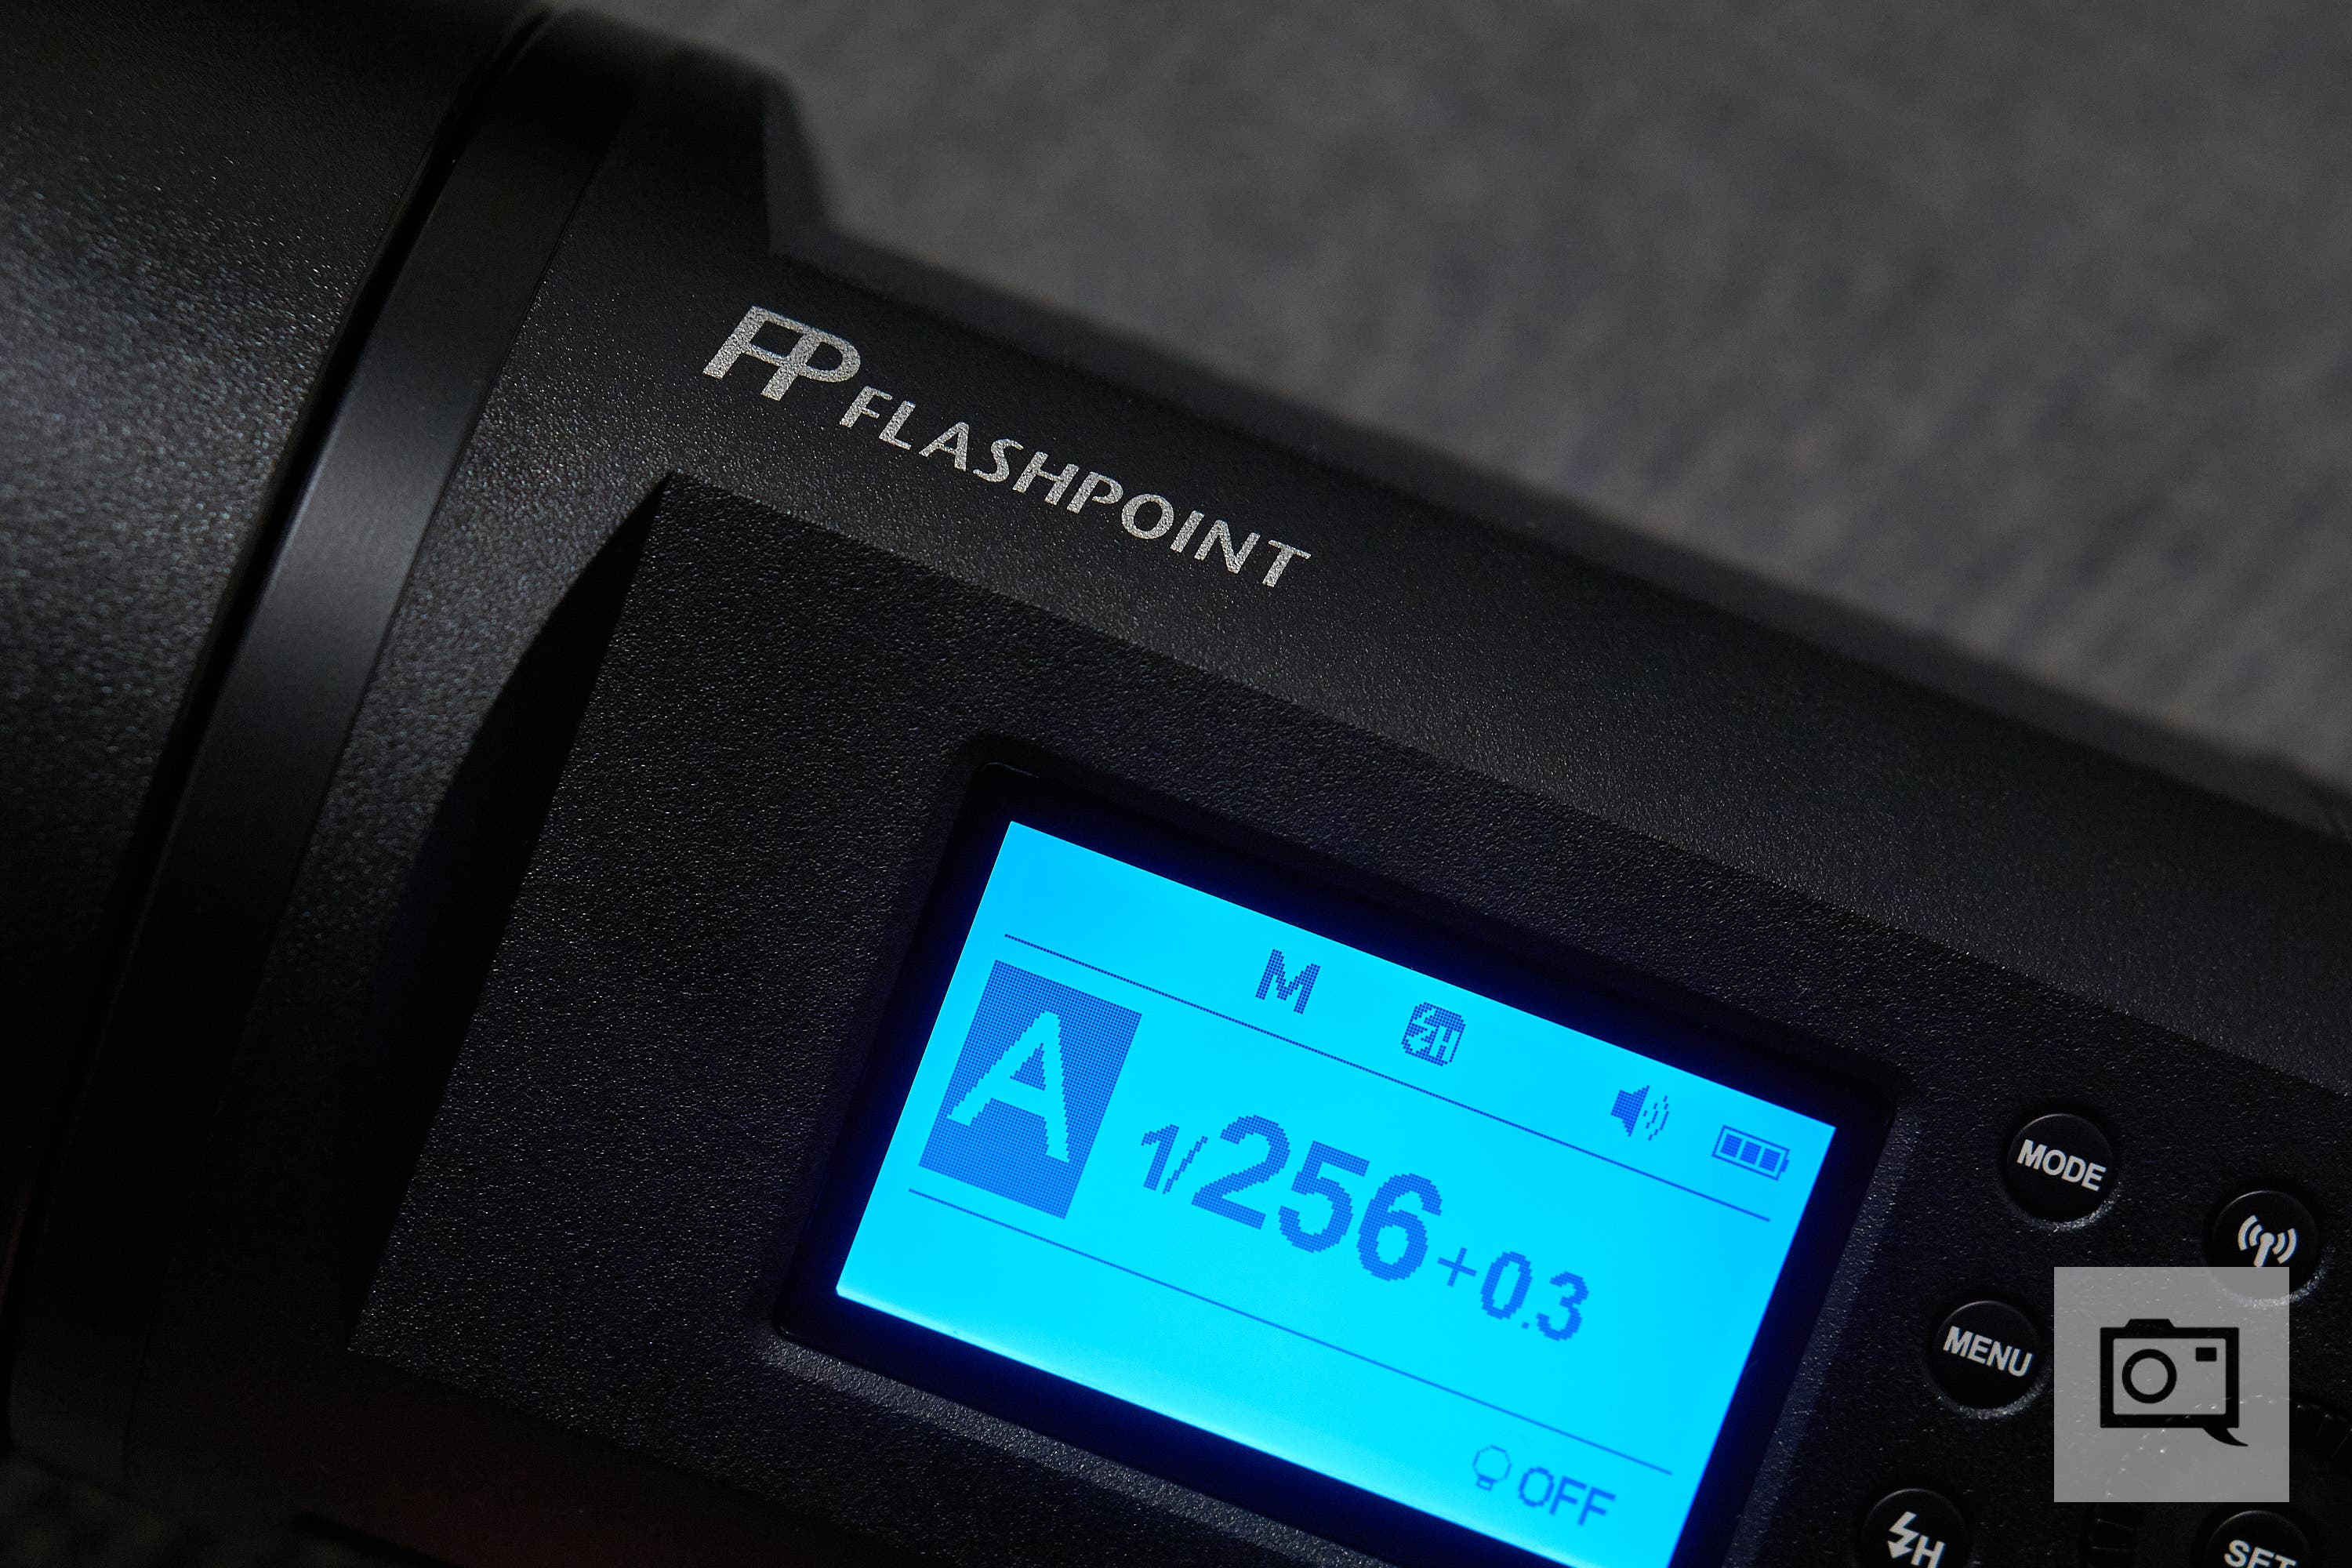 Review: Flashpoint XPLOR 600 Pro TTL Battery Powered Monolight (Sony TTL)